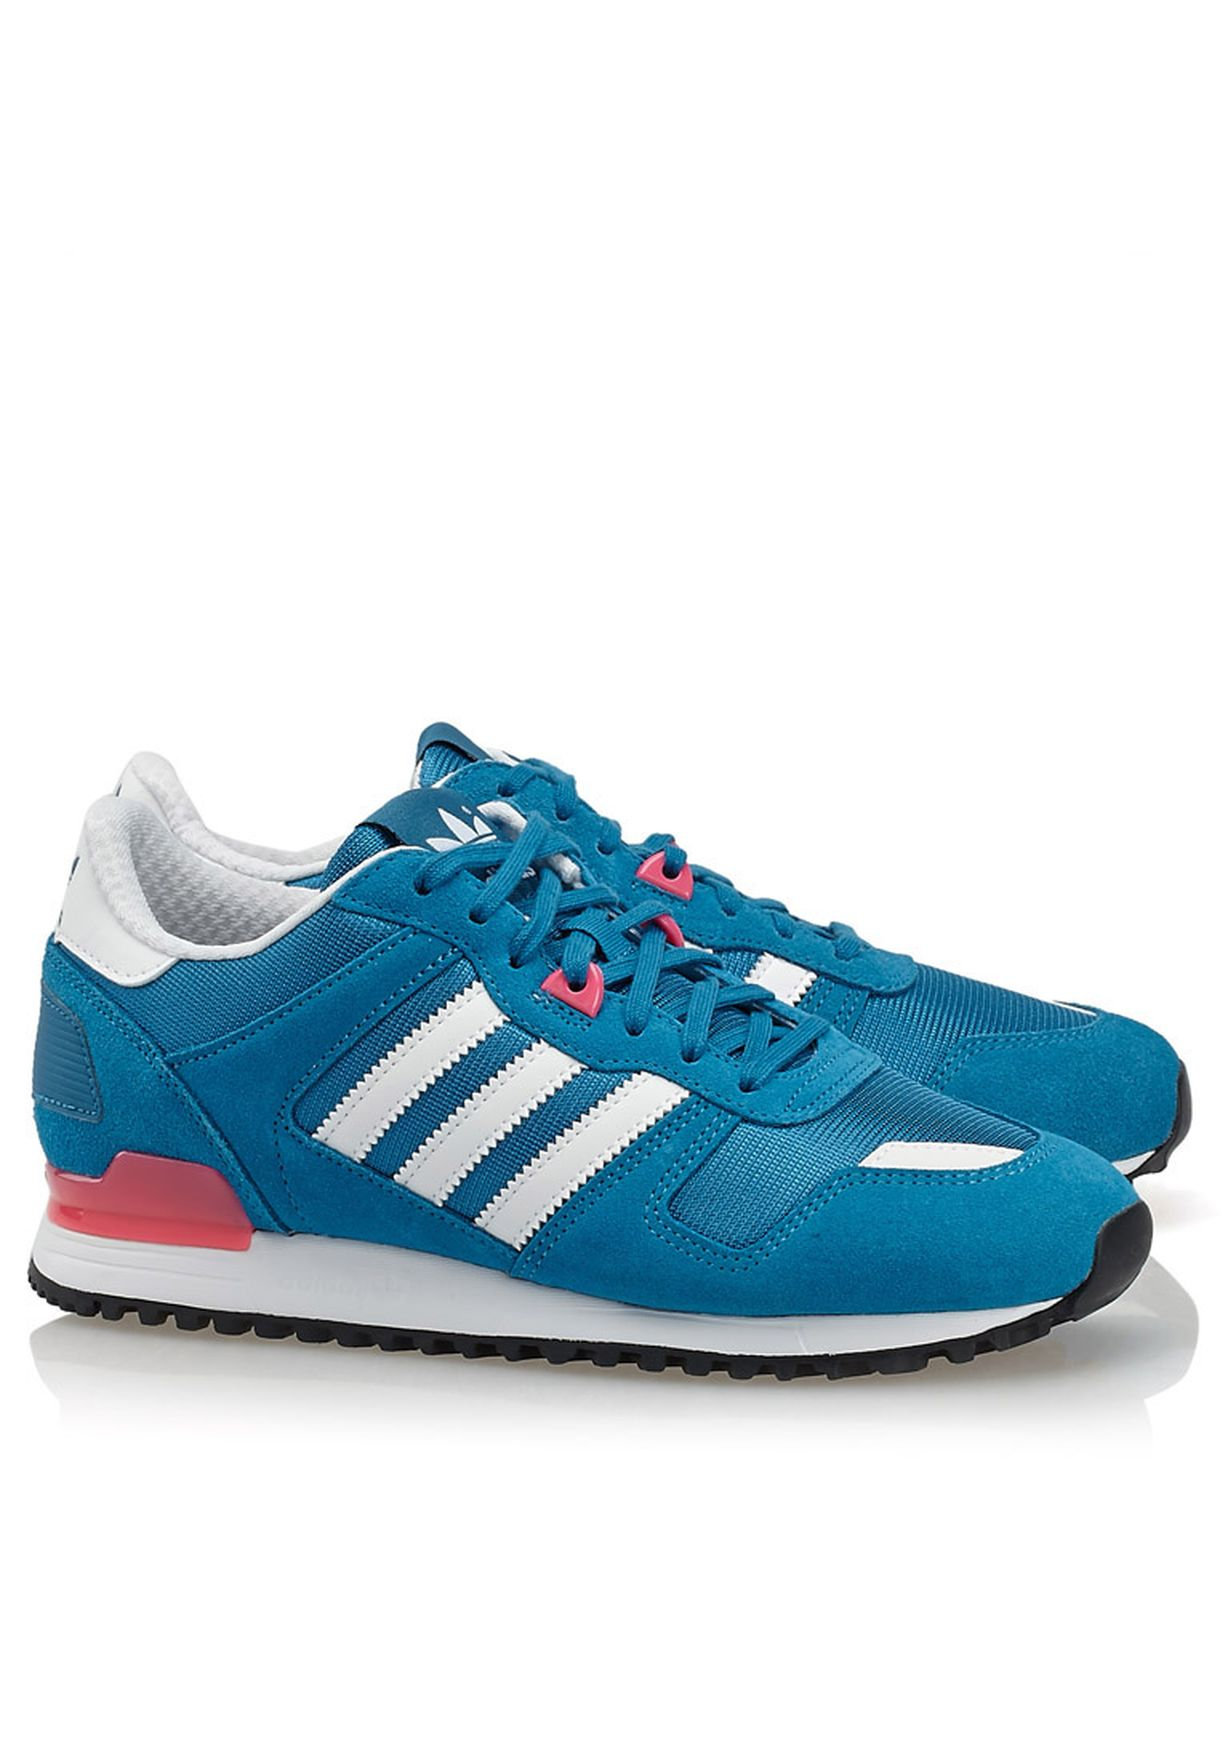 04bbad228a70a Shop adidas Originals blue ZX 700 Sneakers M20978 for Women in UAE ...